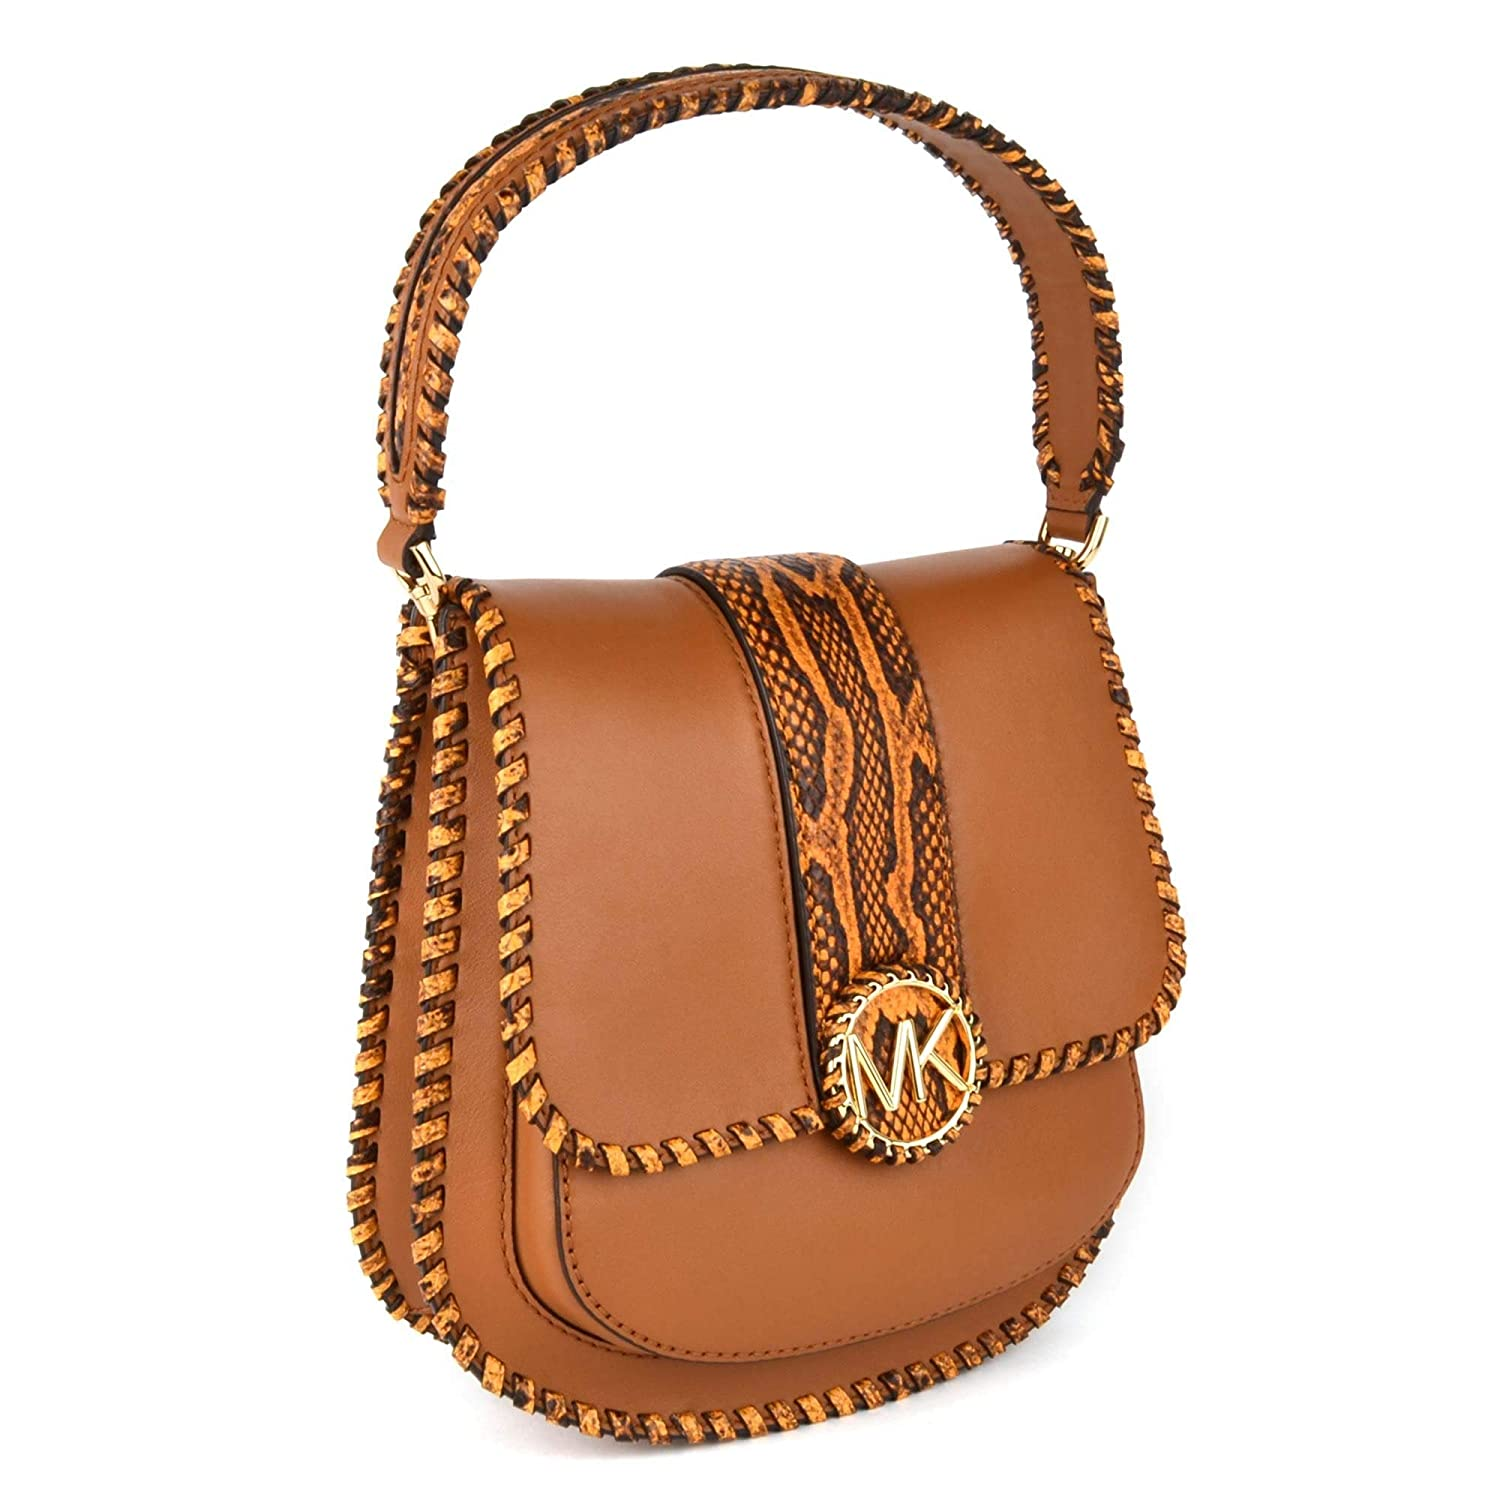 851acd21fc4db7 MICHAEL by Michael Kors Lillie Acorn Leather Messenger Bag one size Acorn:  Amazon.co.uk: Shoes & Bags